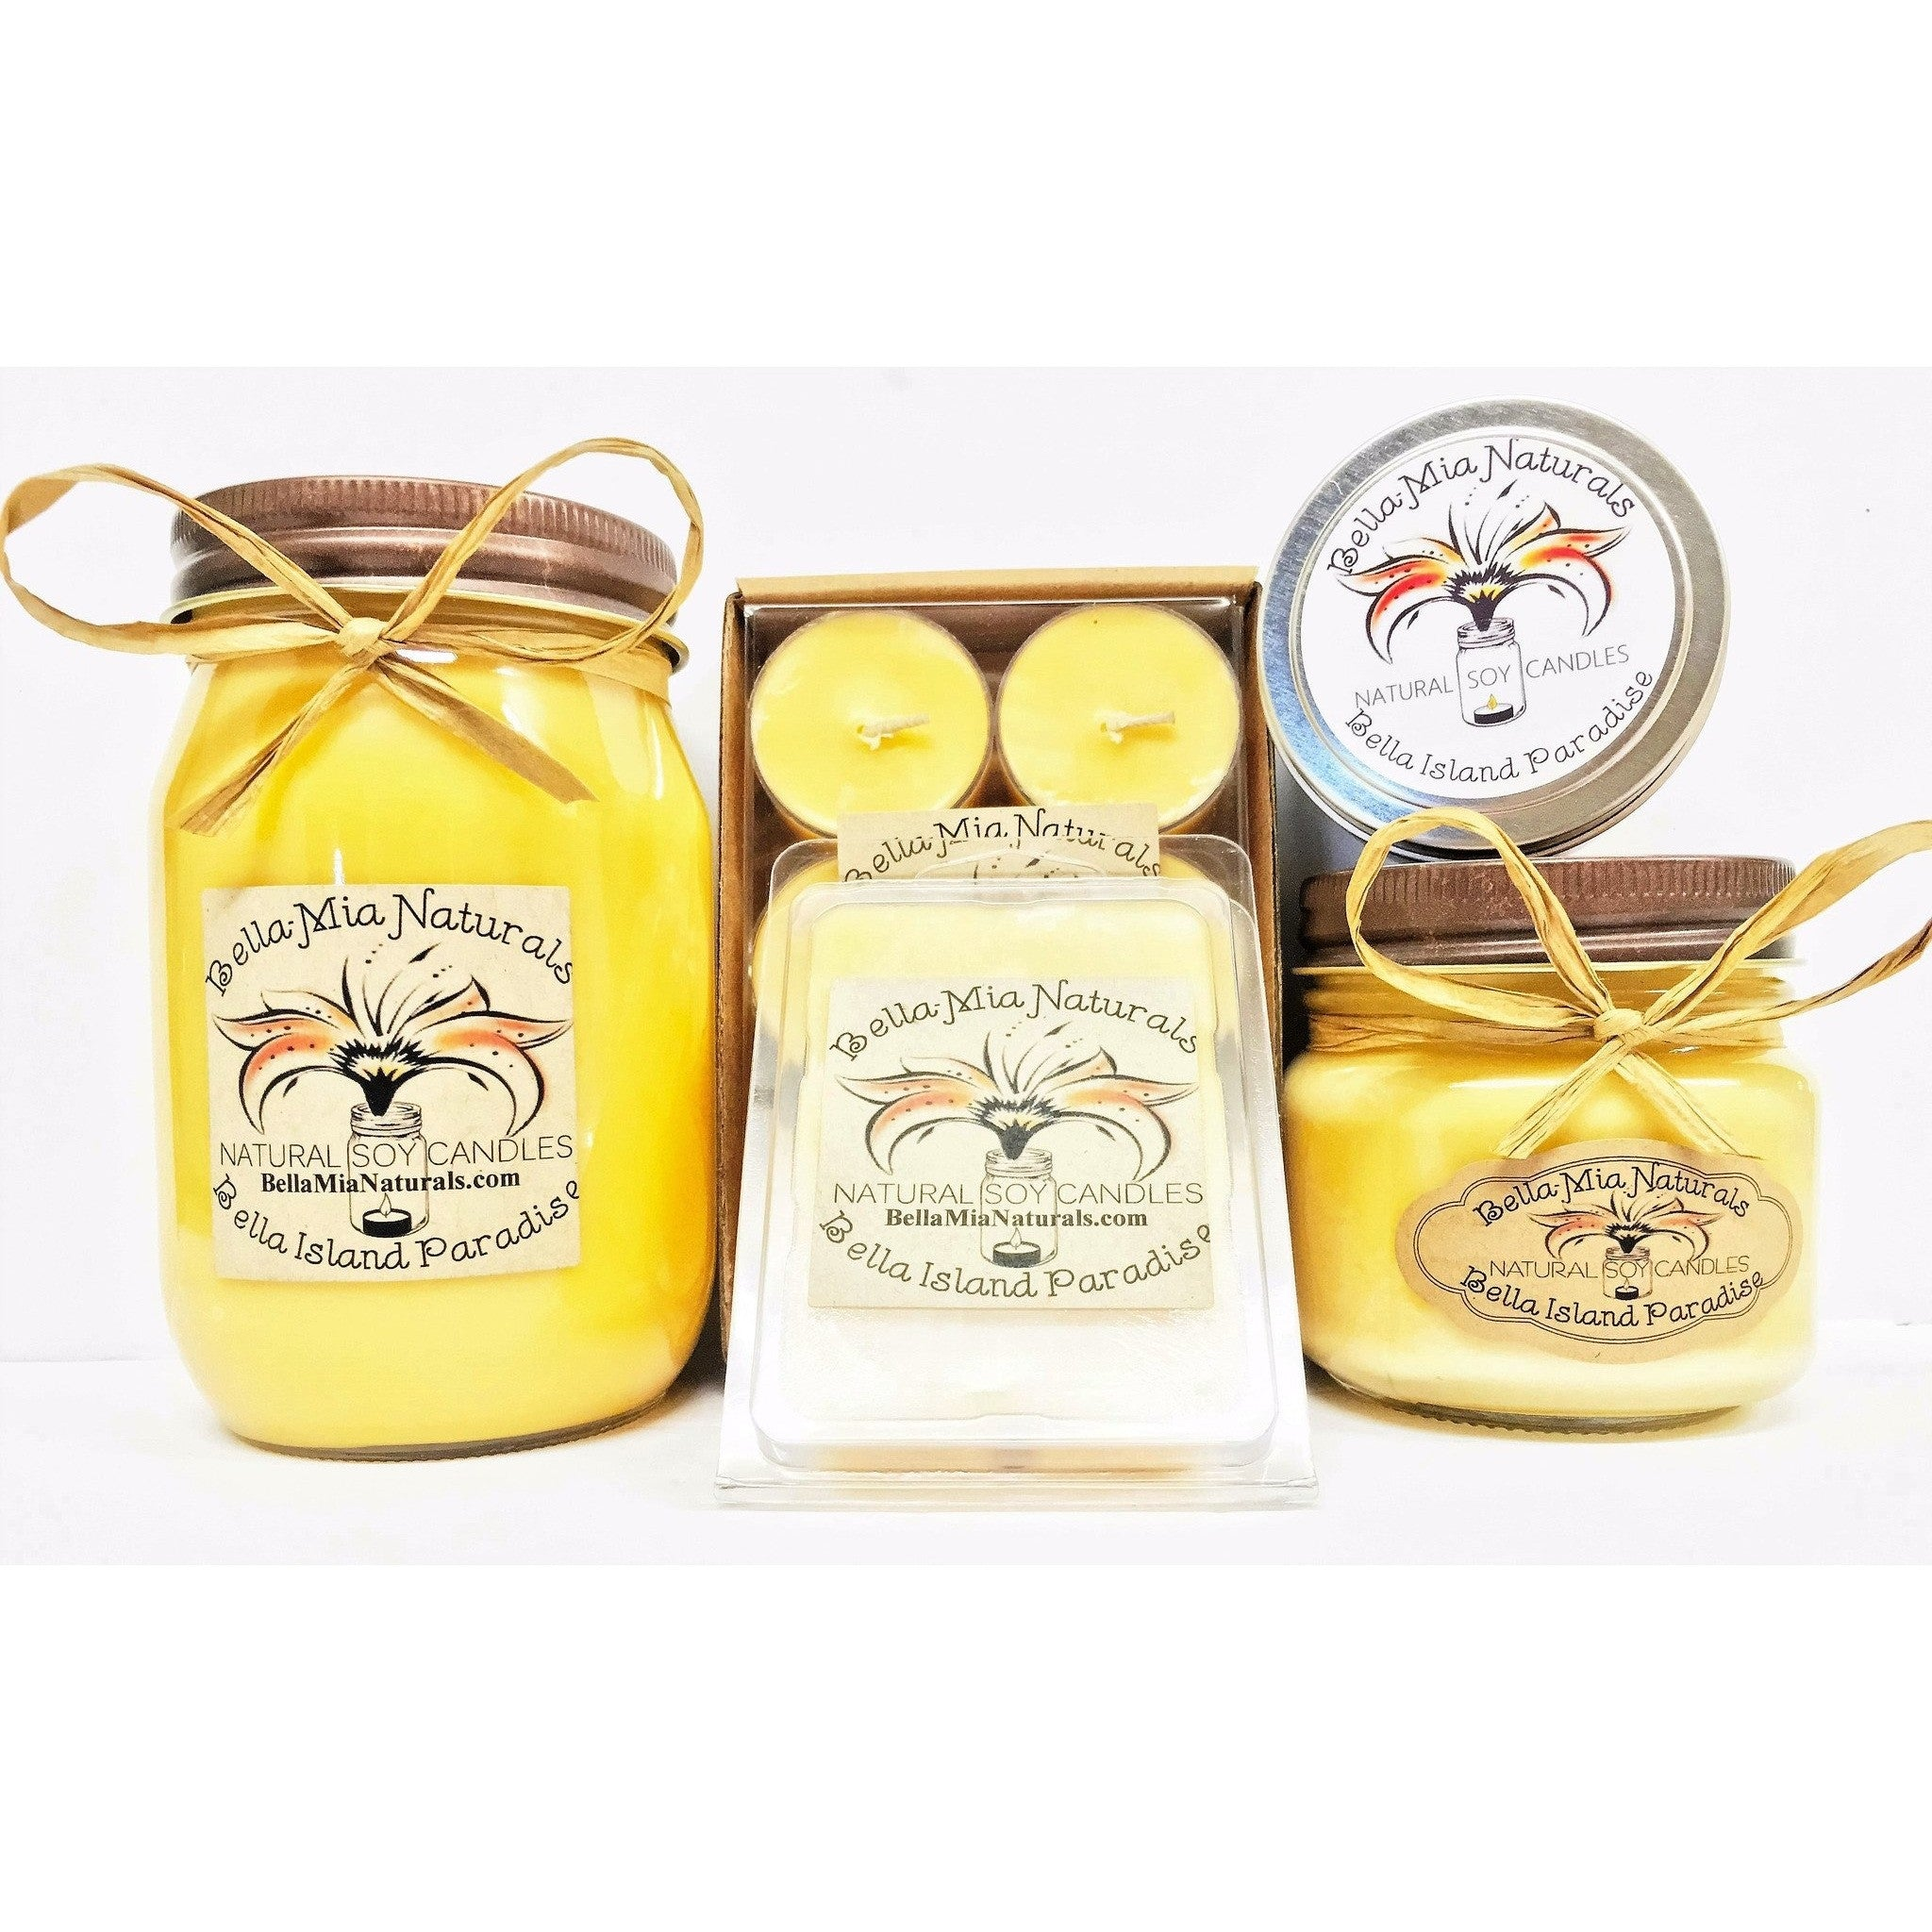 Bella Island Paradise Natural Hand Poured Soy Candles -  - Bella-Mia Naturals All Natural Soy Candles & Lip Balms - 1